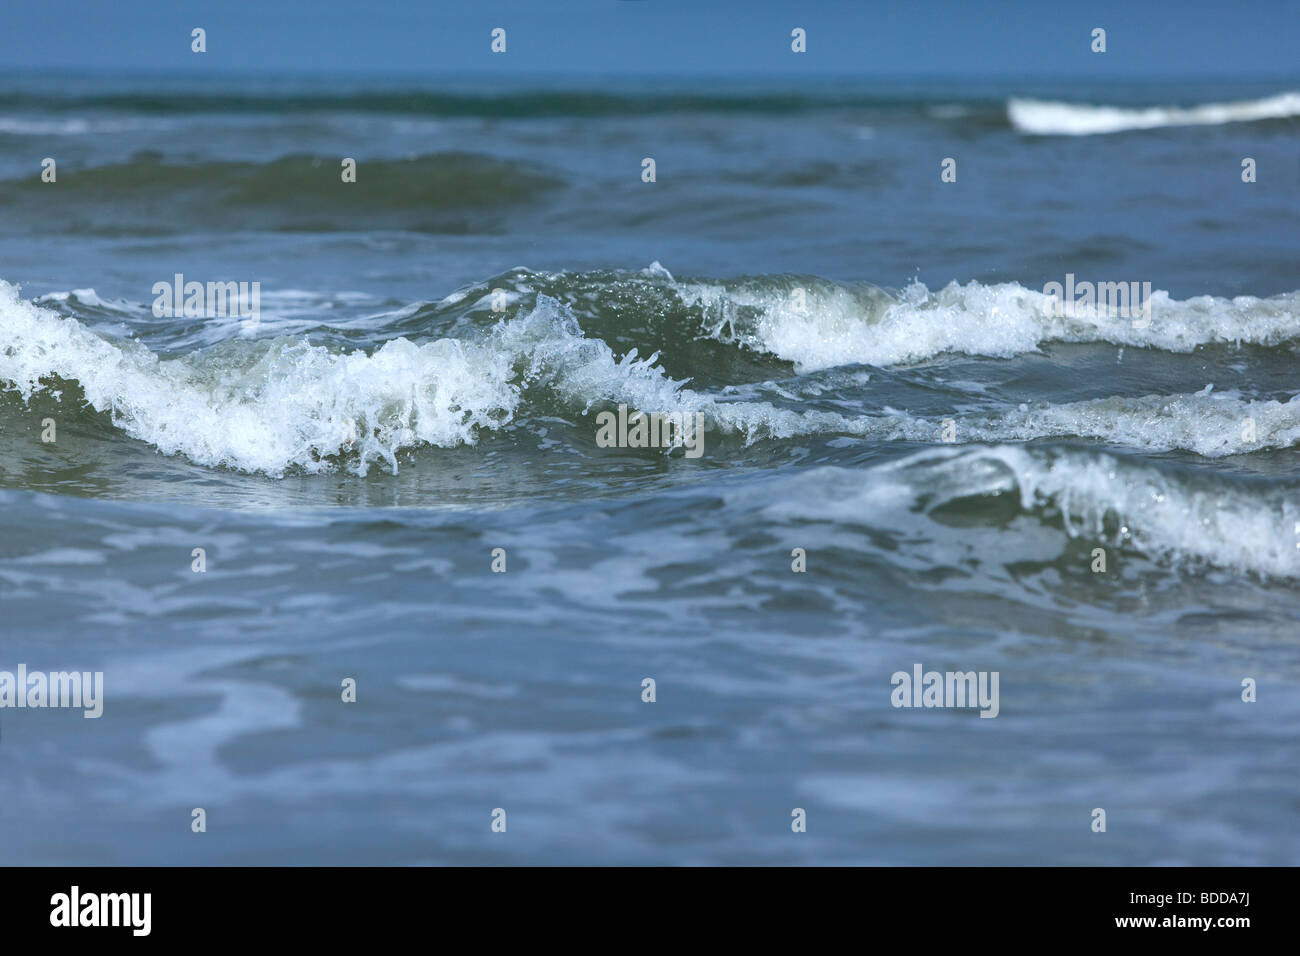 Sea waves - Stock Image